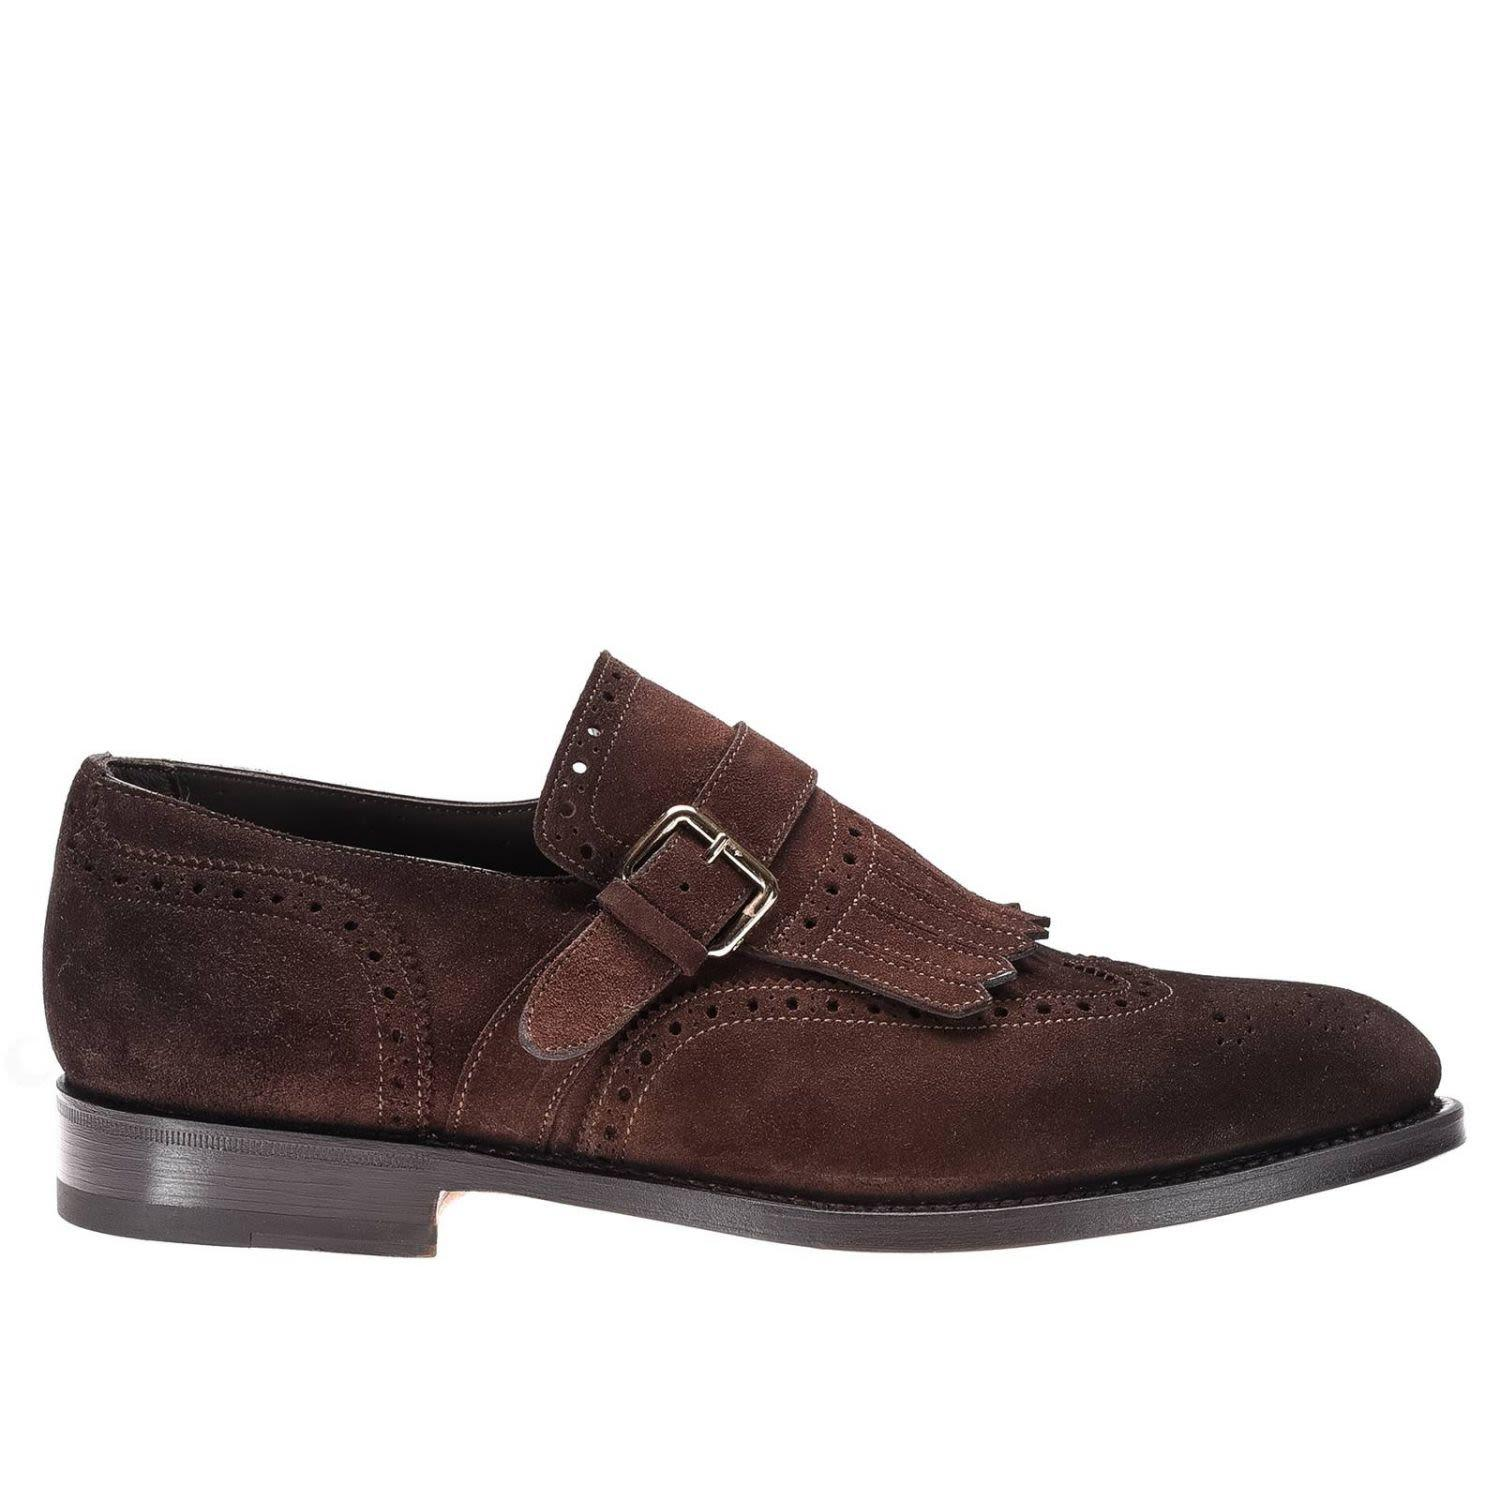 Santoni Brogue Shoes Shoes Men  In Burnt